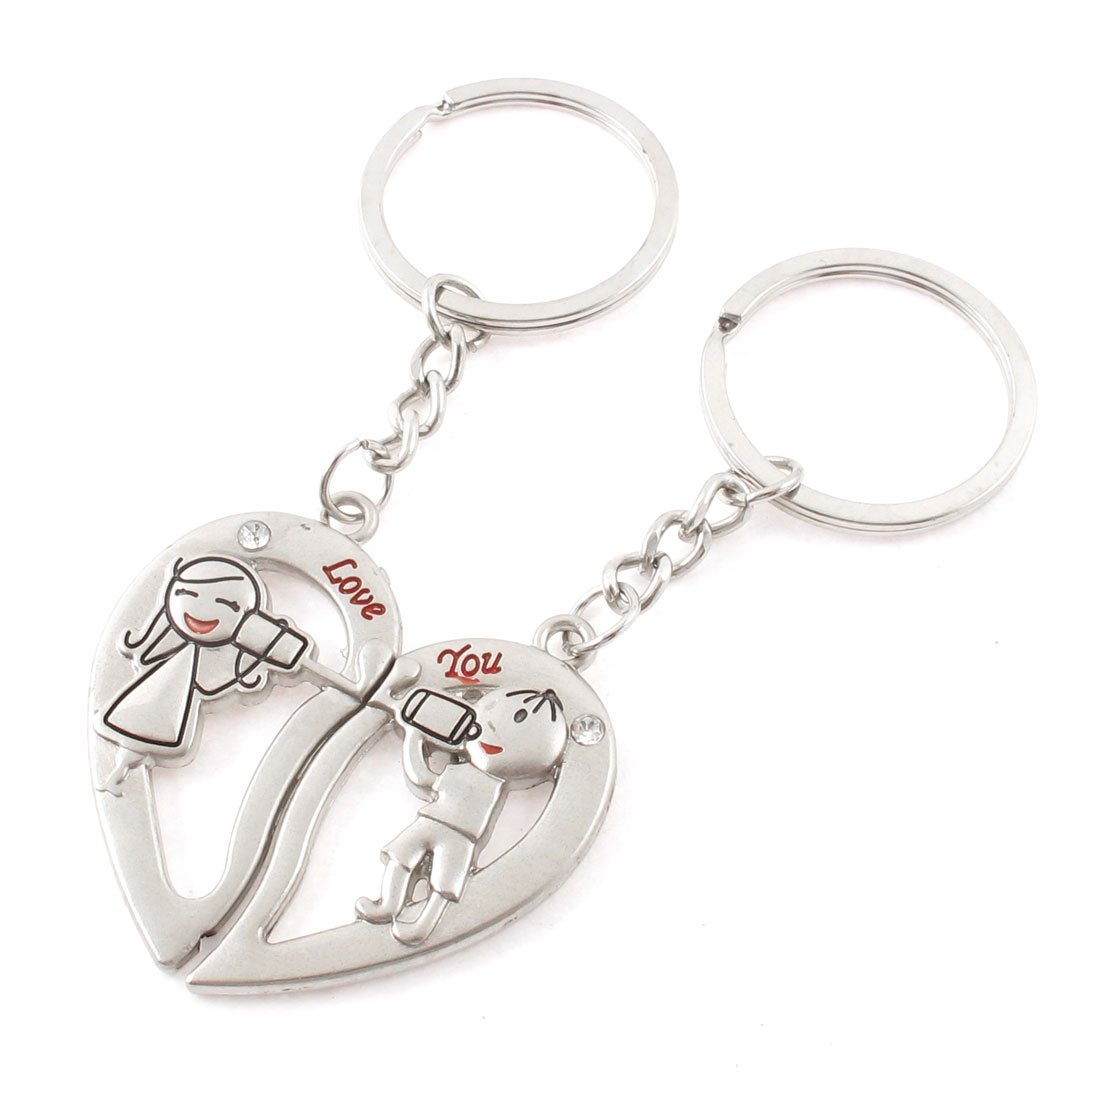 Cartoon Carved Rhinestone Inlaid Dangling Pendant Split Ring Keychain Keyring 2 Pcs